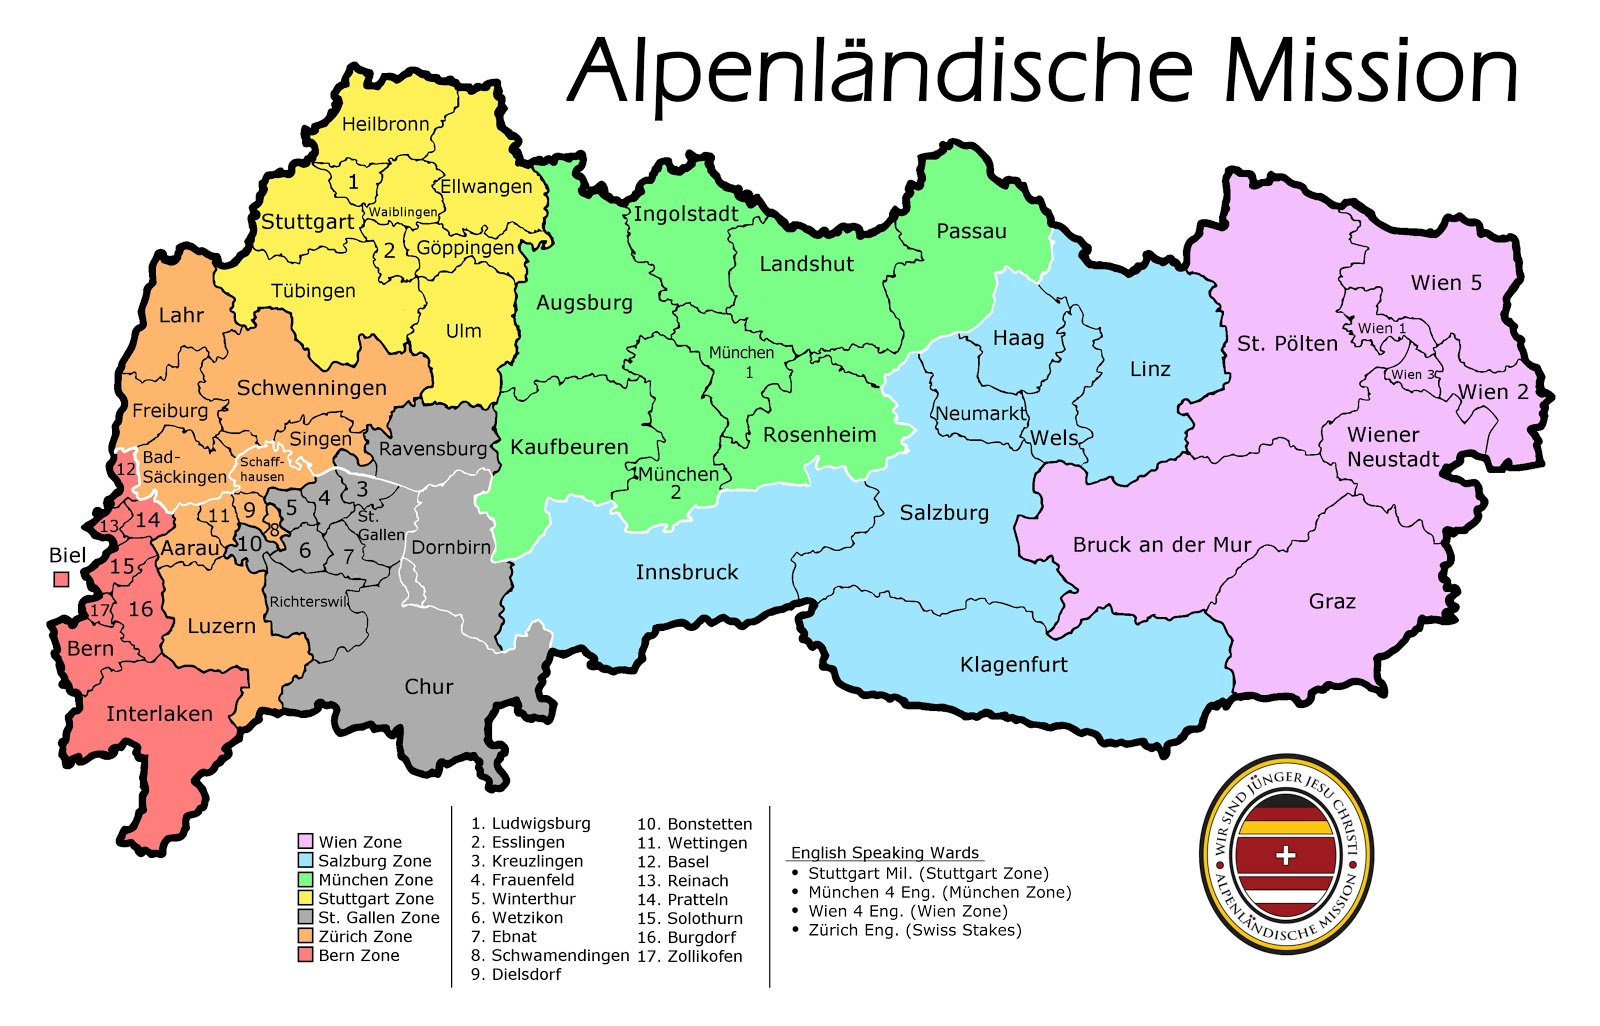 Alpine GermanSpeaking Mission